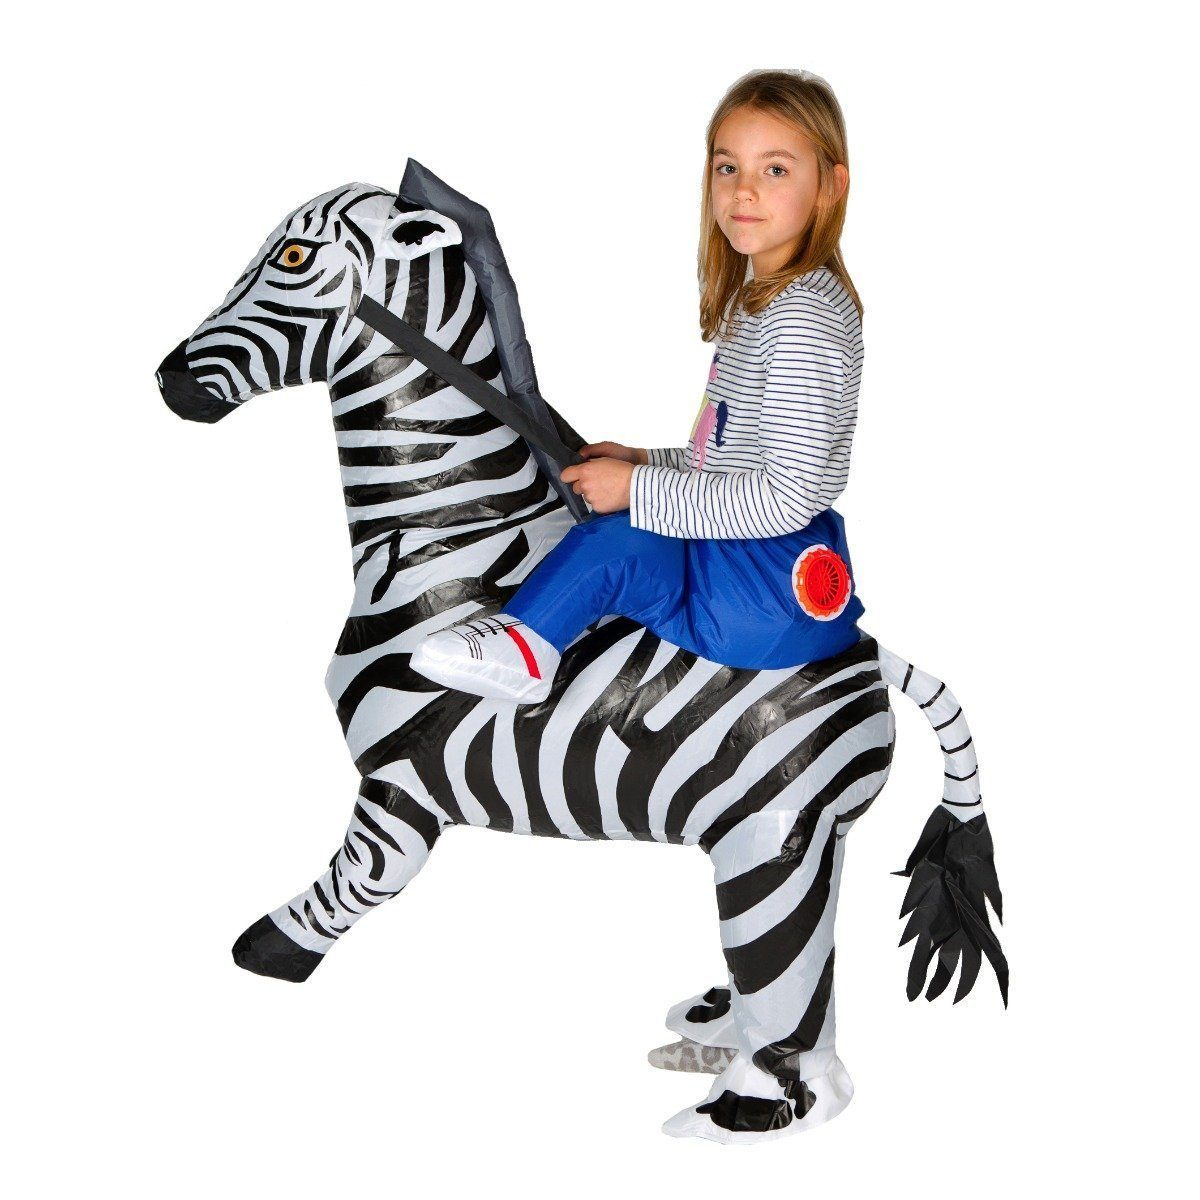 Fancy Dress - Kids Inflatable Zebra Costume